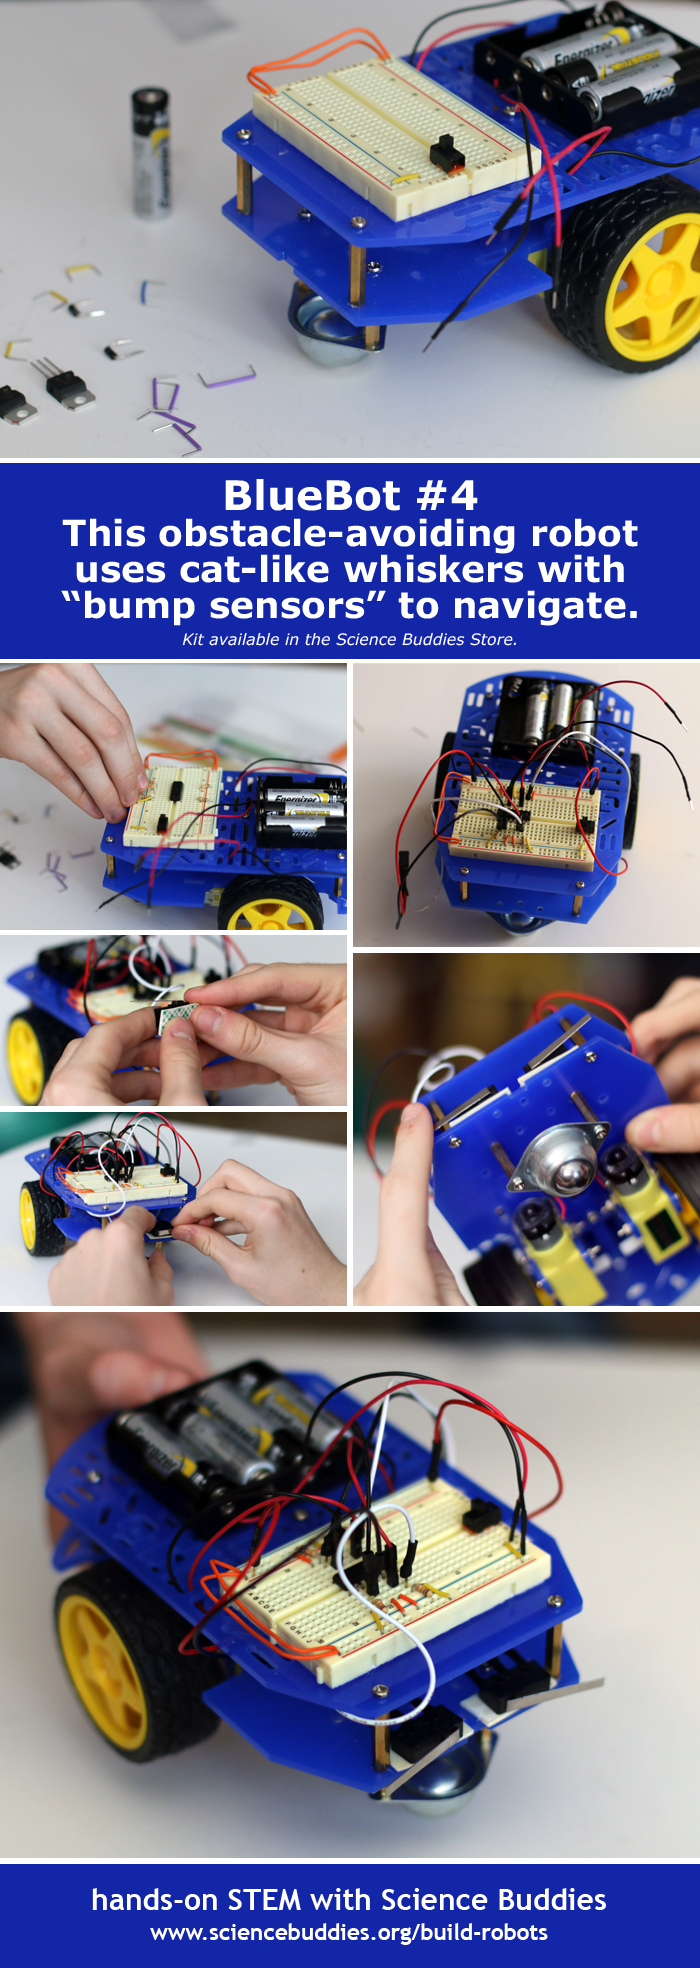 BlueBot #4 - the Obstacle-Avoiding BlueBot, part of the series of robotics projects that can be done with the BlueBot: 4-in-1 Robotics Kit